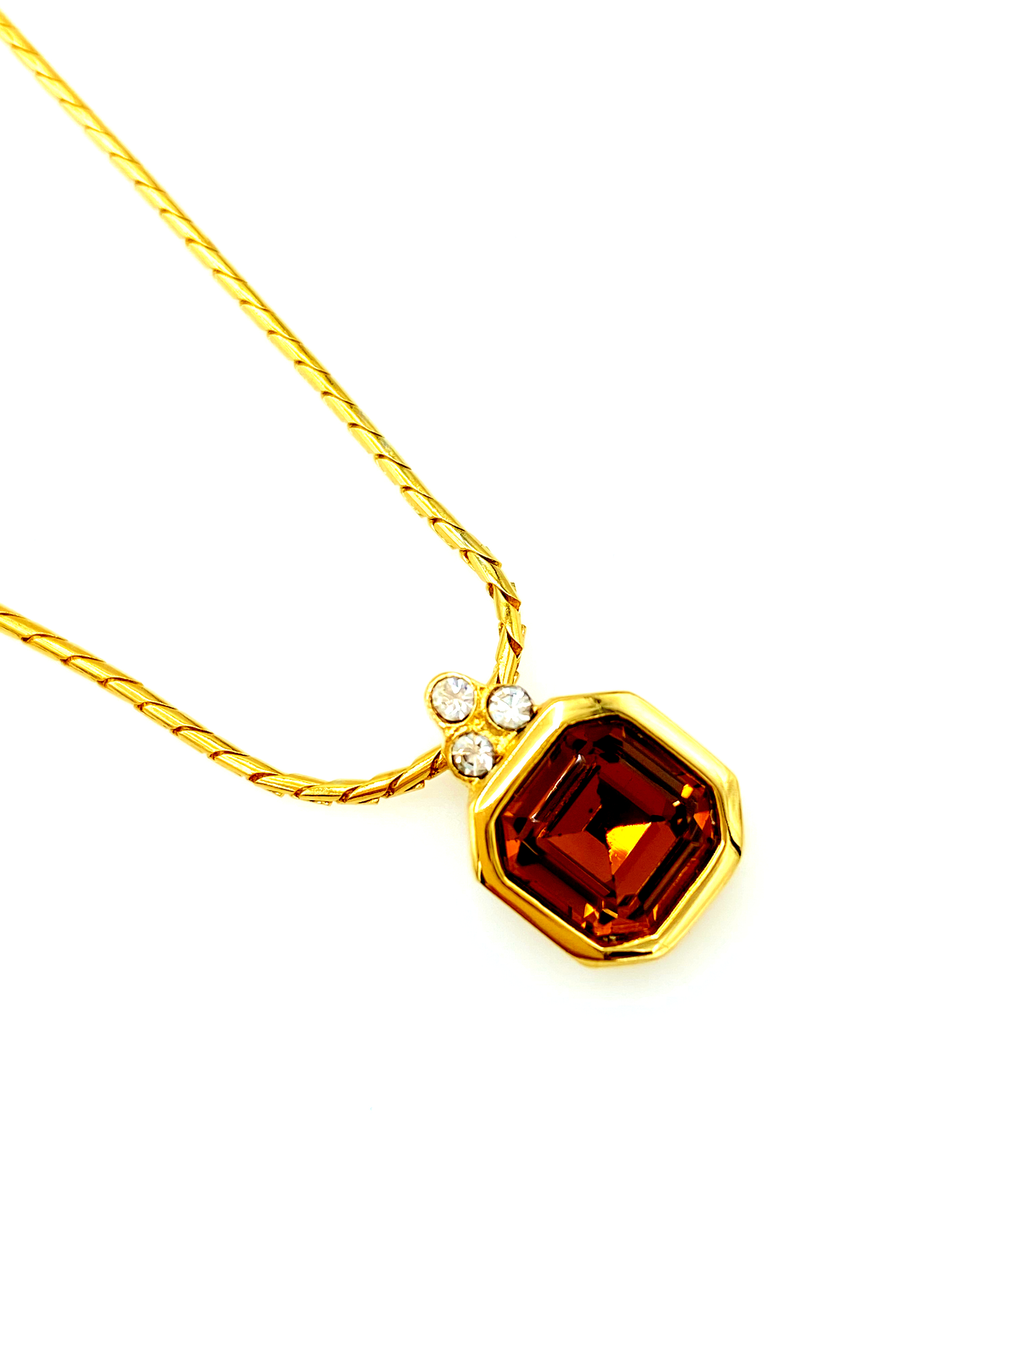 Givenchy Gold Classic Brown Topaz Vintage Pendant-Sustainable Fashion with Vintage Style-Trending Designer Fashion-24 Wishes